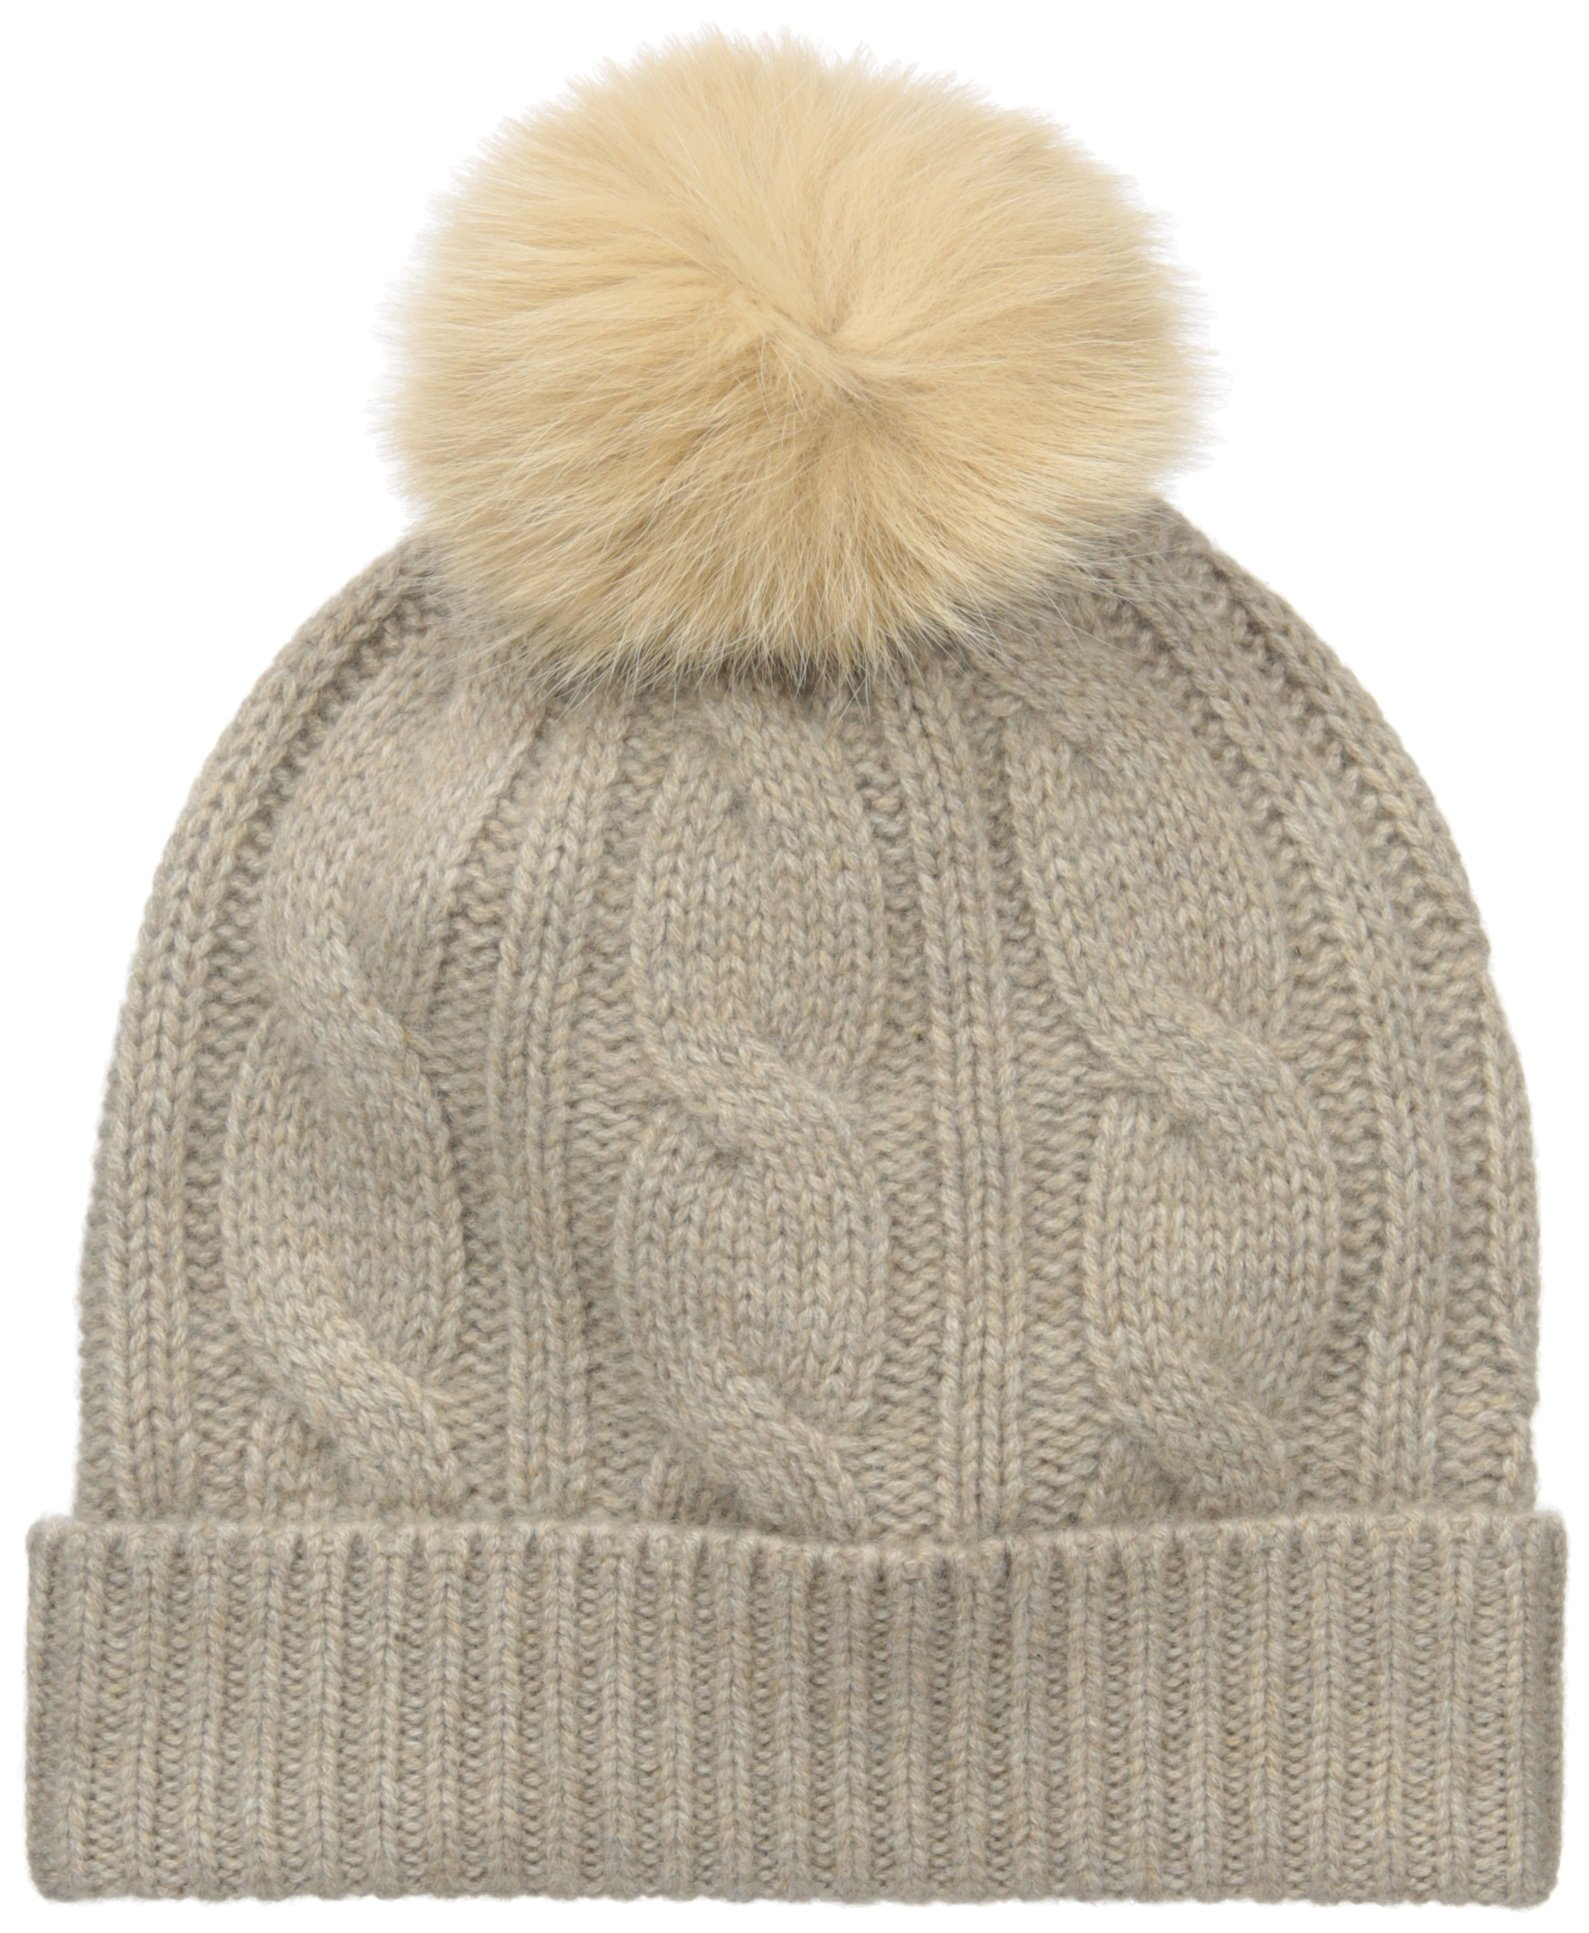 Sofia Cashmere Women's 100% Cashmere Cable Hat with Fox Fur Pom, Dark Natural, One by Sofia Cashmere